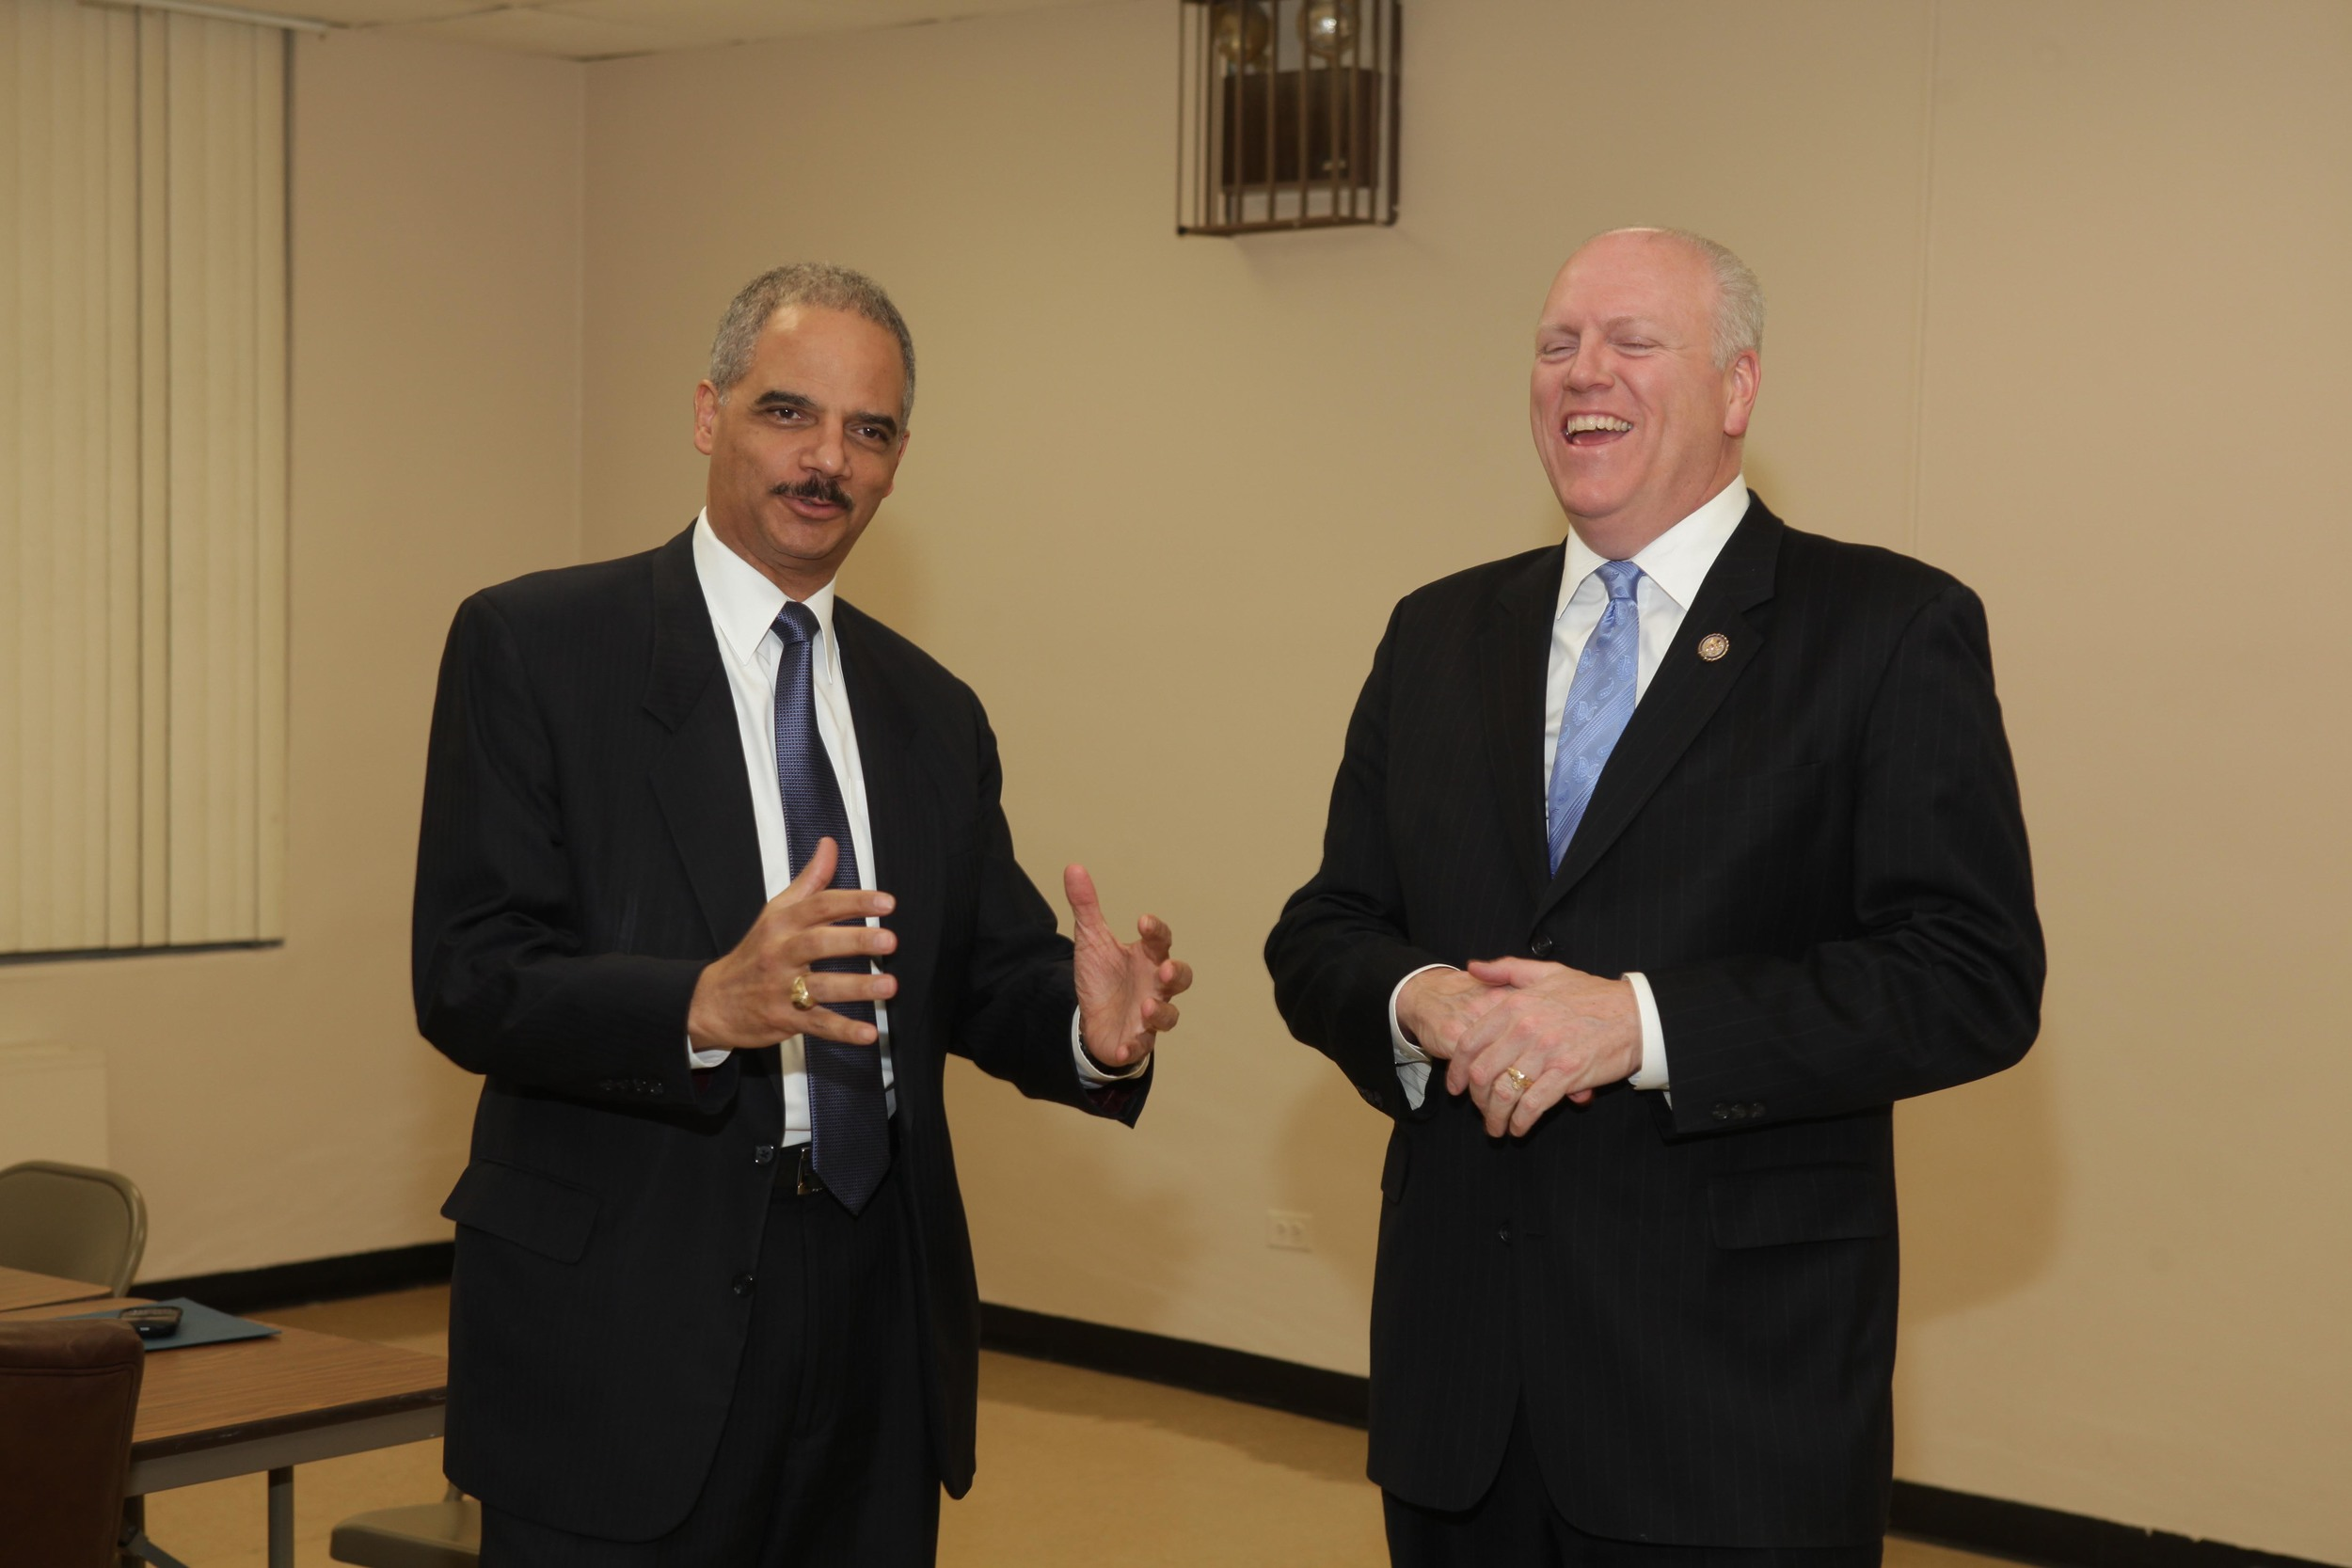 U.S. Representative Joseph Crowley (D-Queens), right, with former U.S. Attorney General Eric Holder, left, at a 2011 event. U.S. Representative Crowley is the chair of theDemocratic Party CountyCommittee of Queens. As such, he determines which officials run for office with the Democratic Party's institutional support. Source : Official Photograph/Office of U.S. Representative Joseph Crowley/Flickr